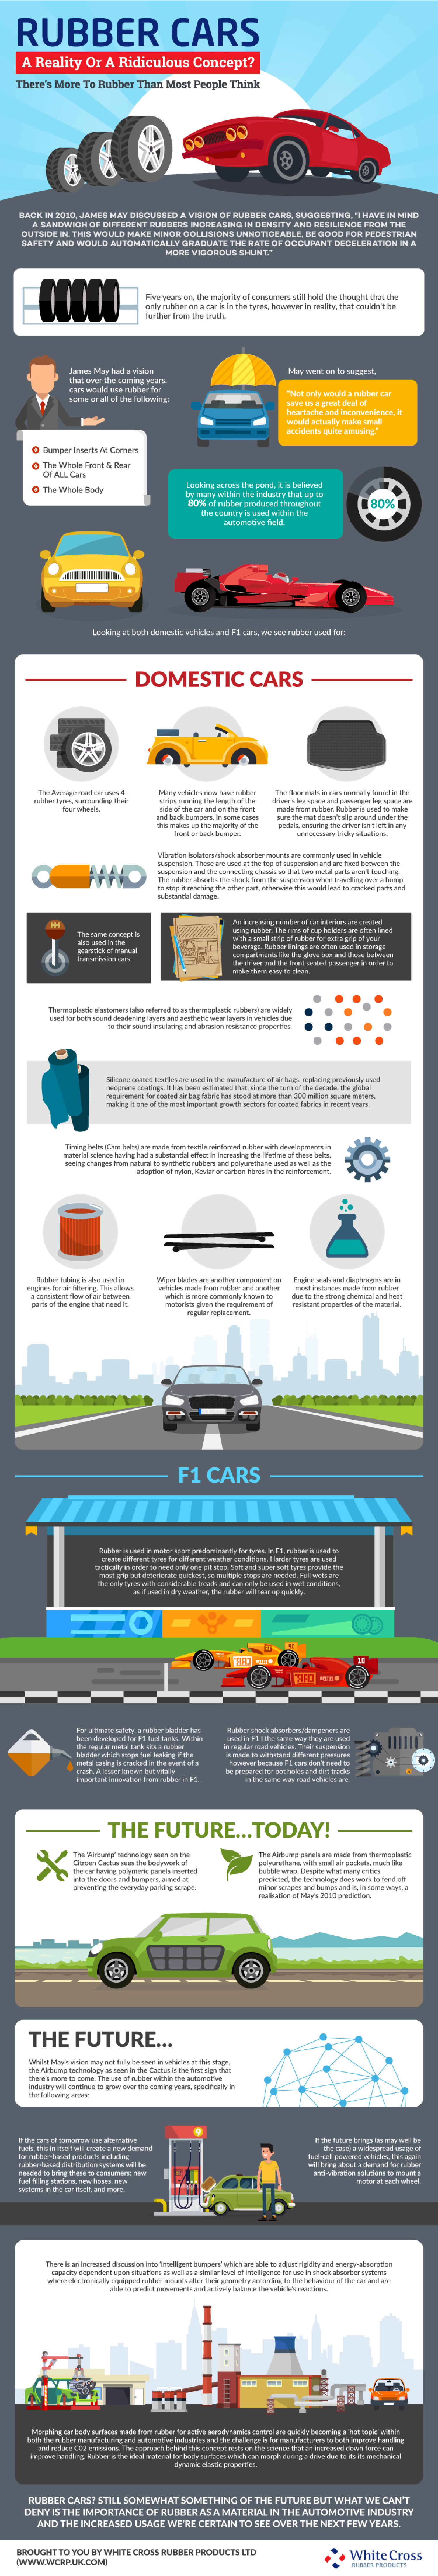 Rubber Cars - A Reality Or A Ridiculous Concept Infographic